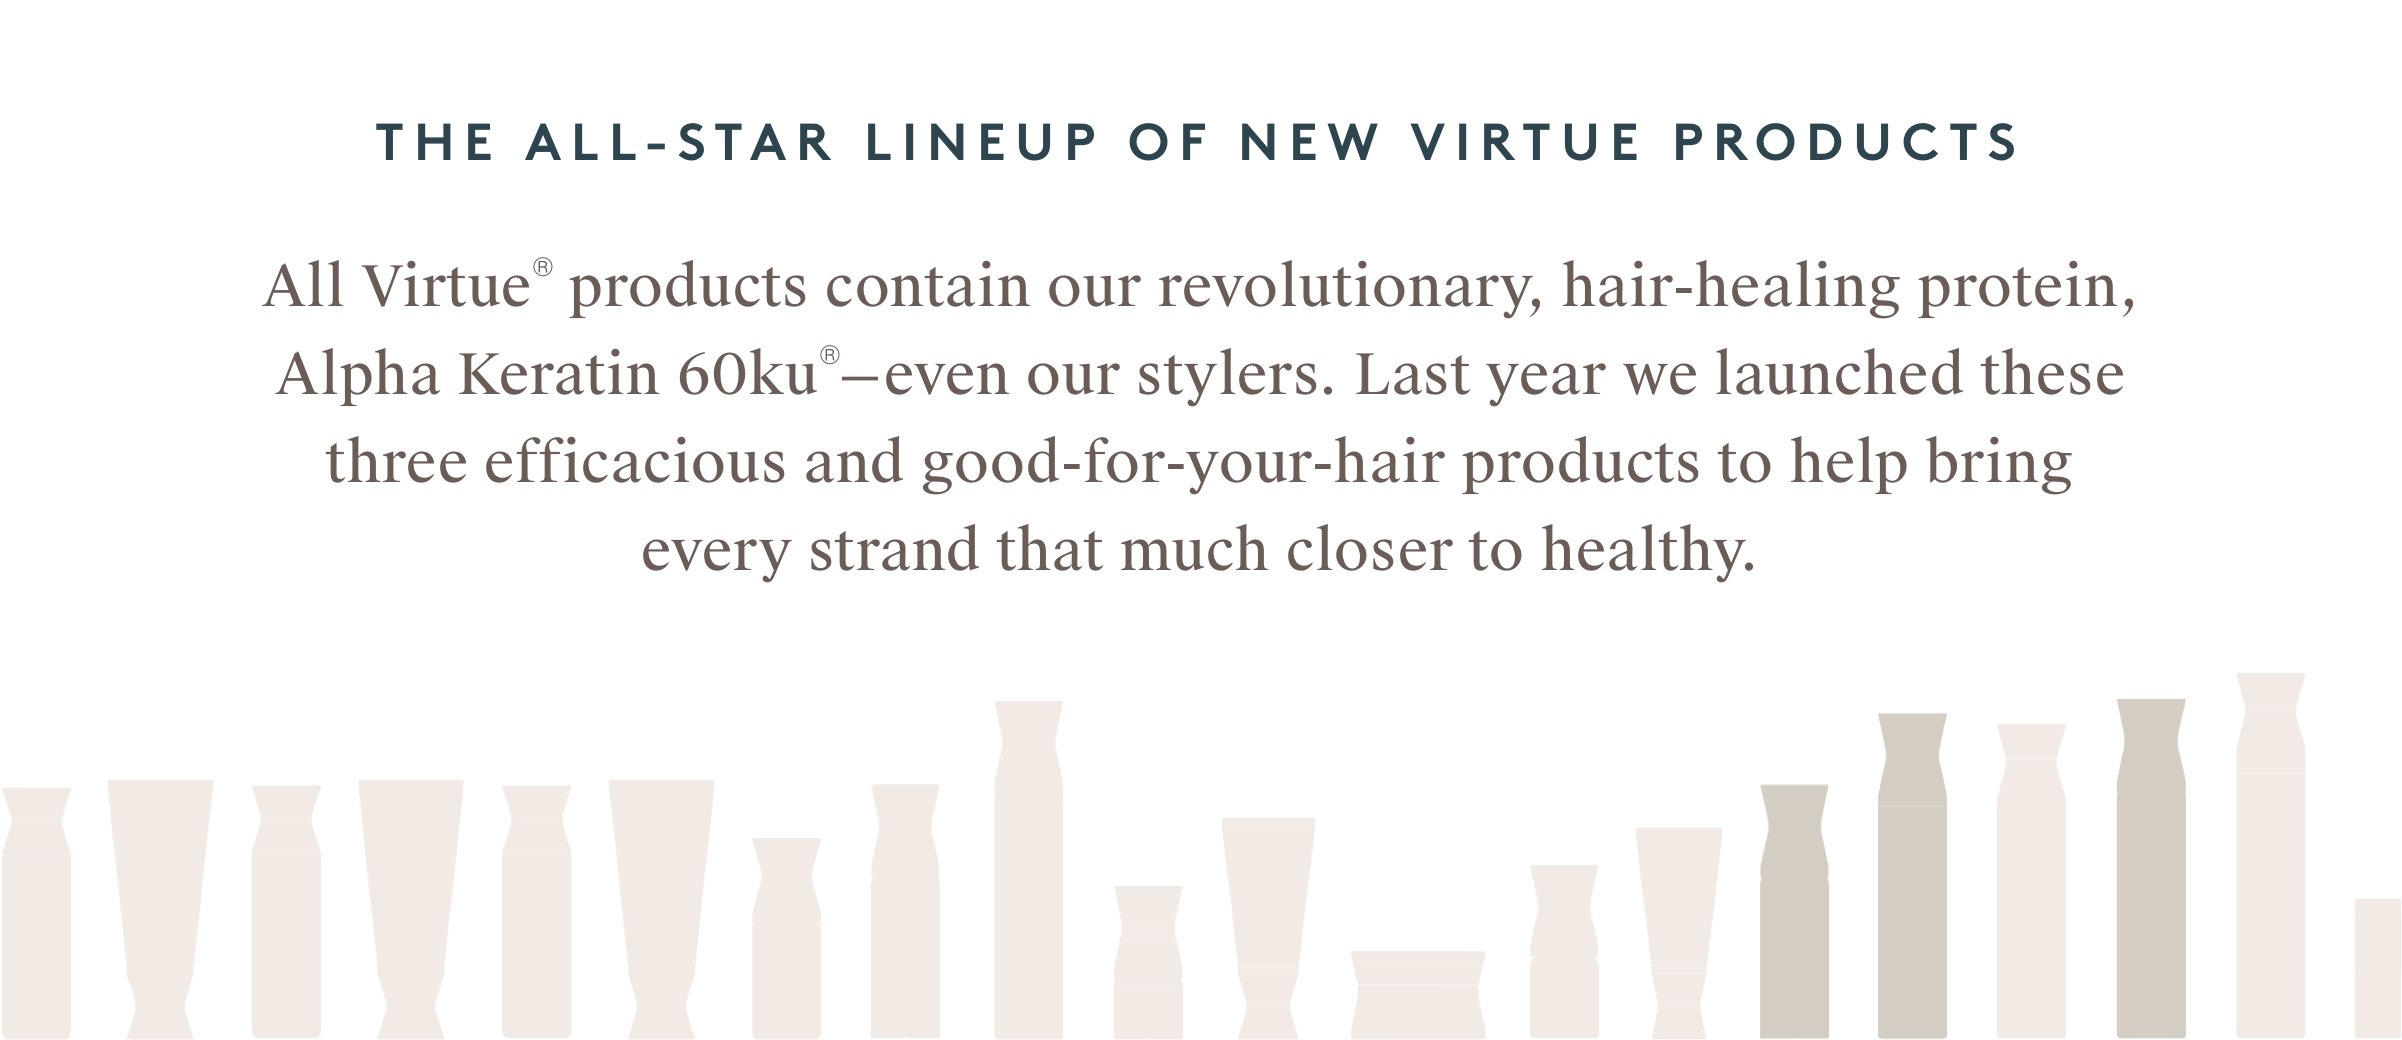 THE ALL-STAR LINEUP OF NEW VIRTUE PRODUCTS